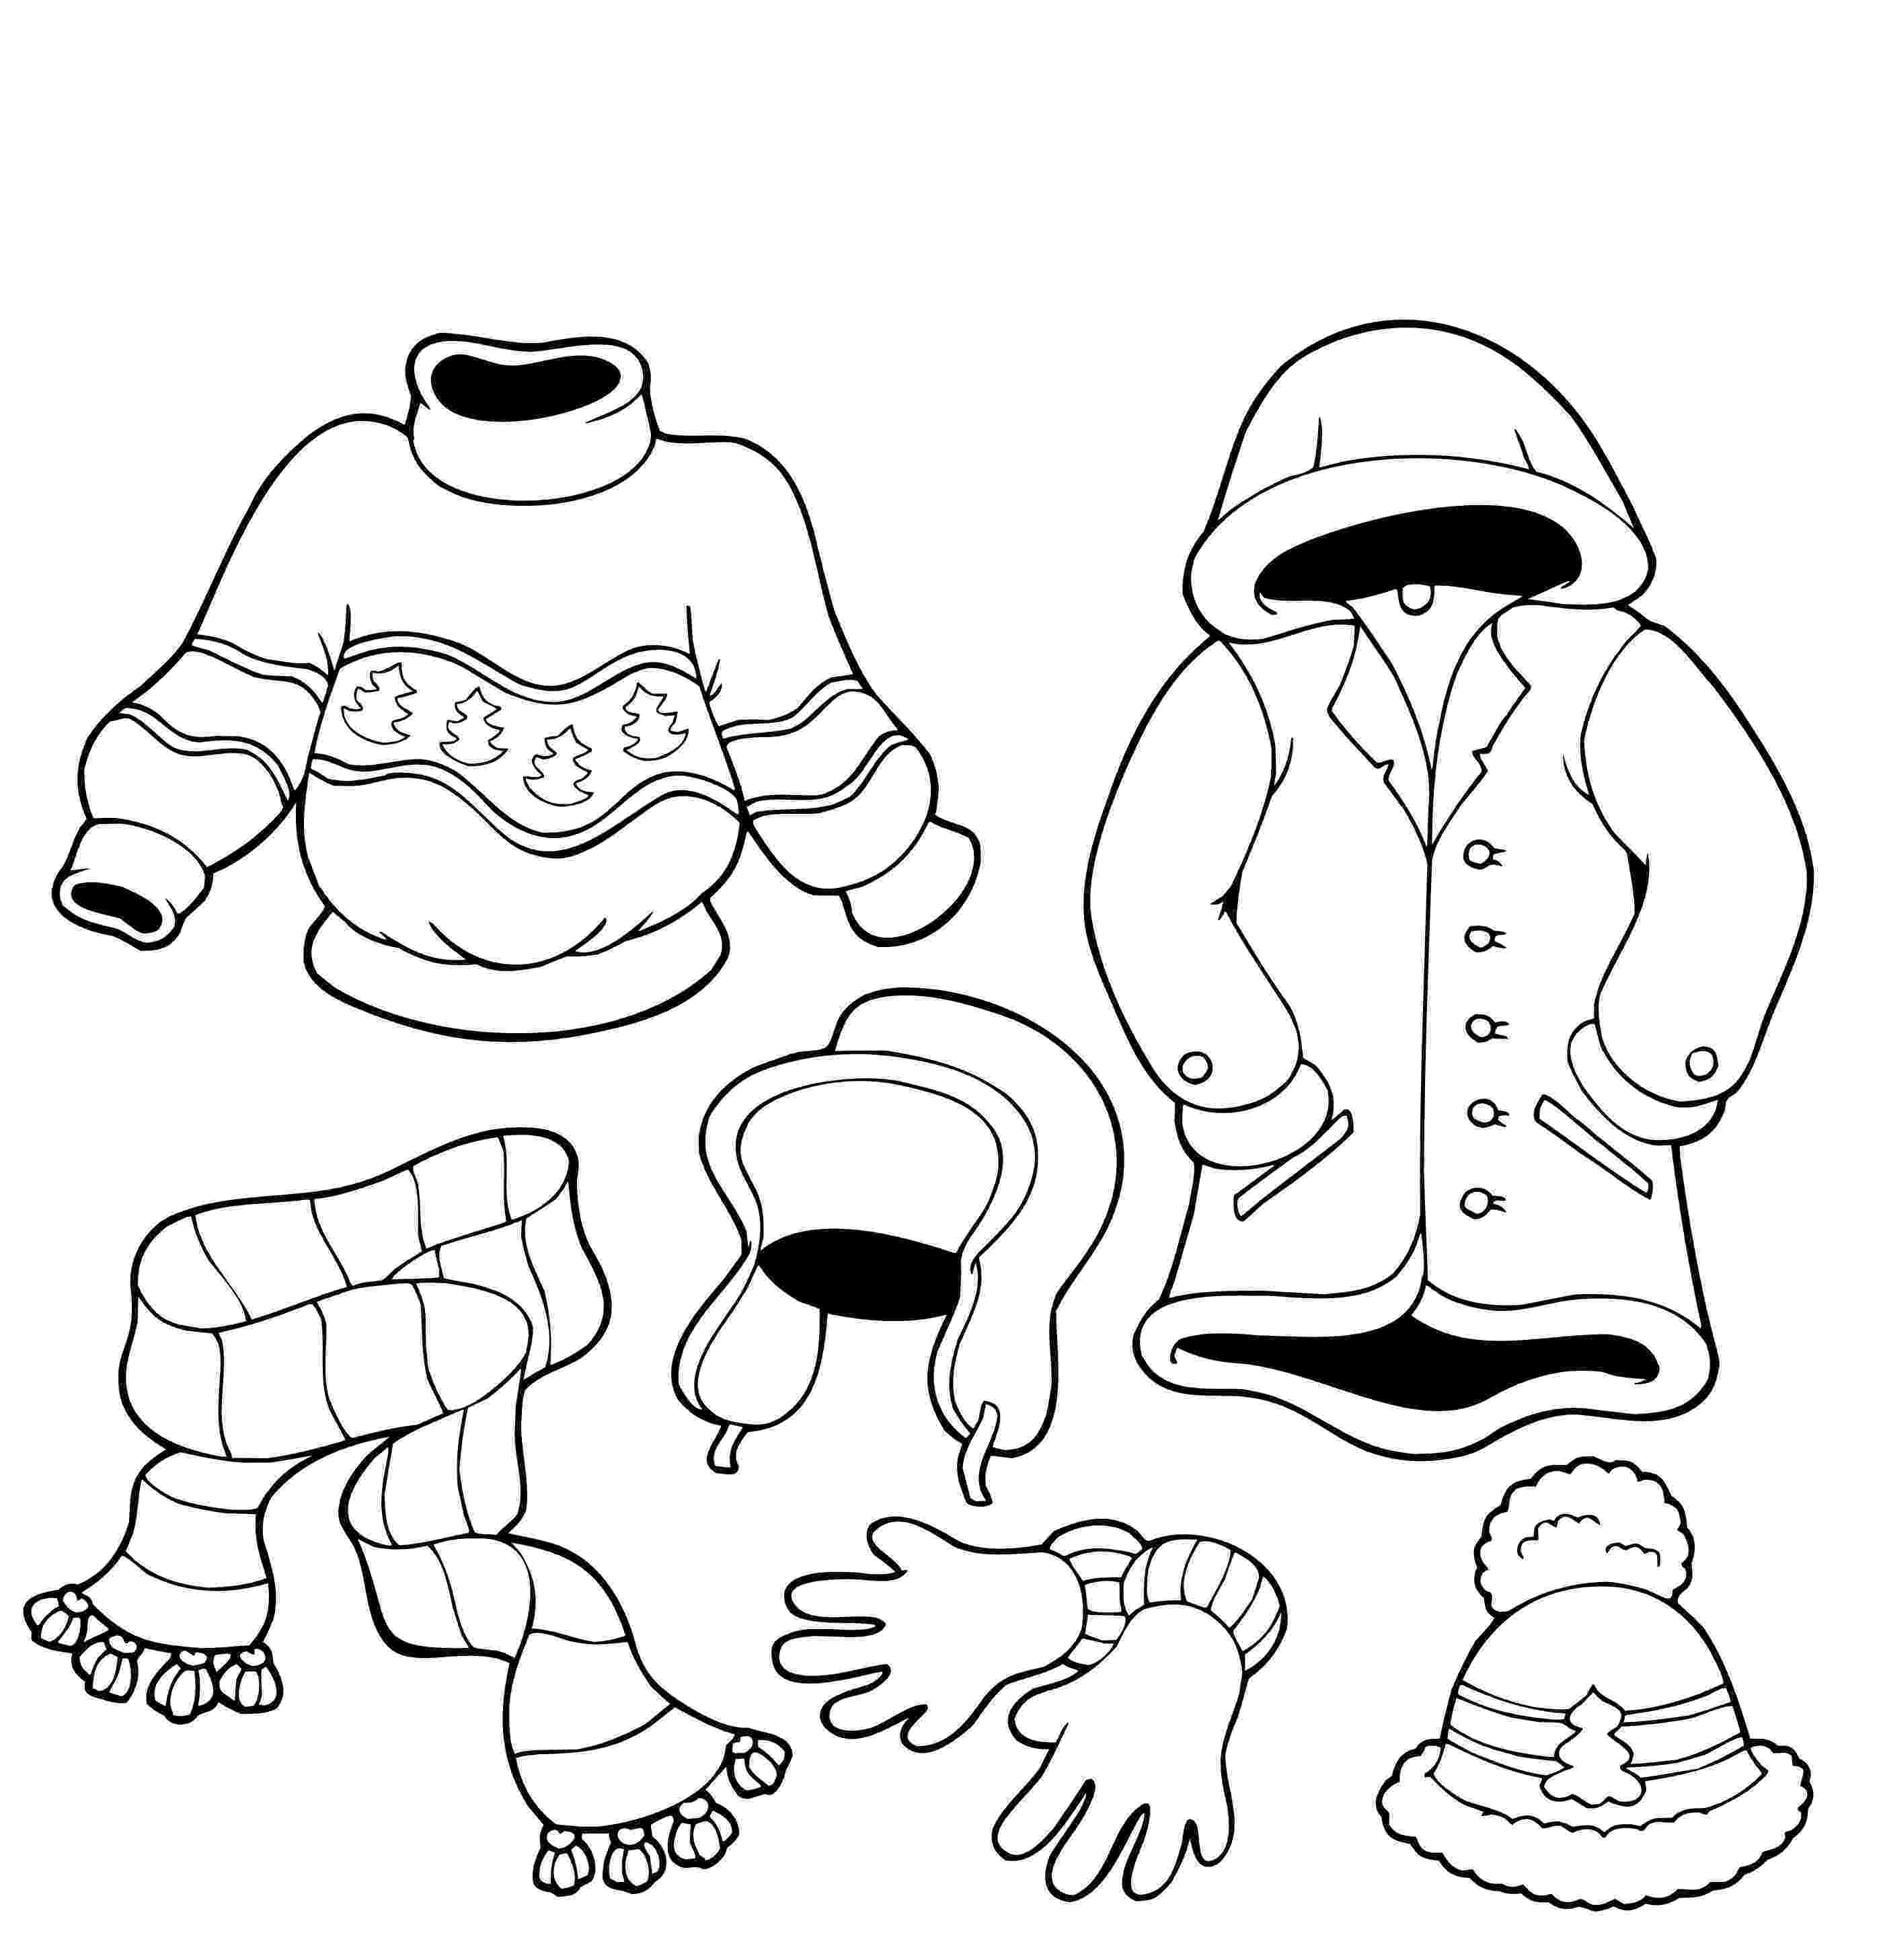 coloring pages clothes printable winter clothes coloring pages to download and print for free printable coloring pages clothes